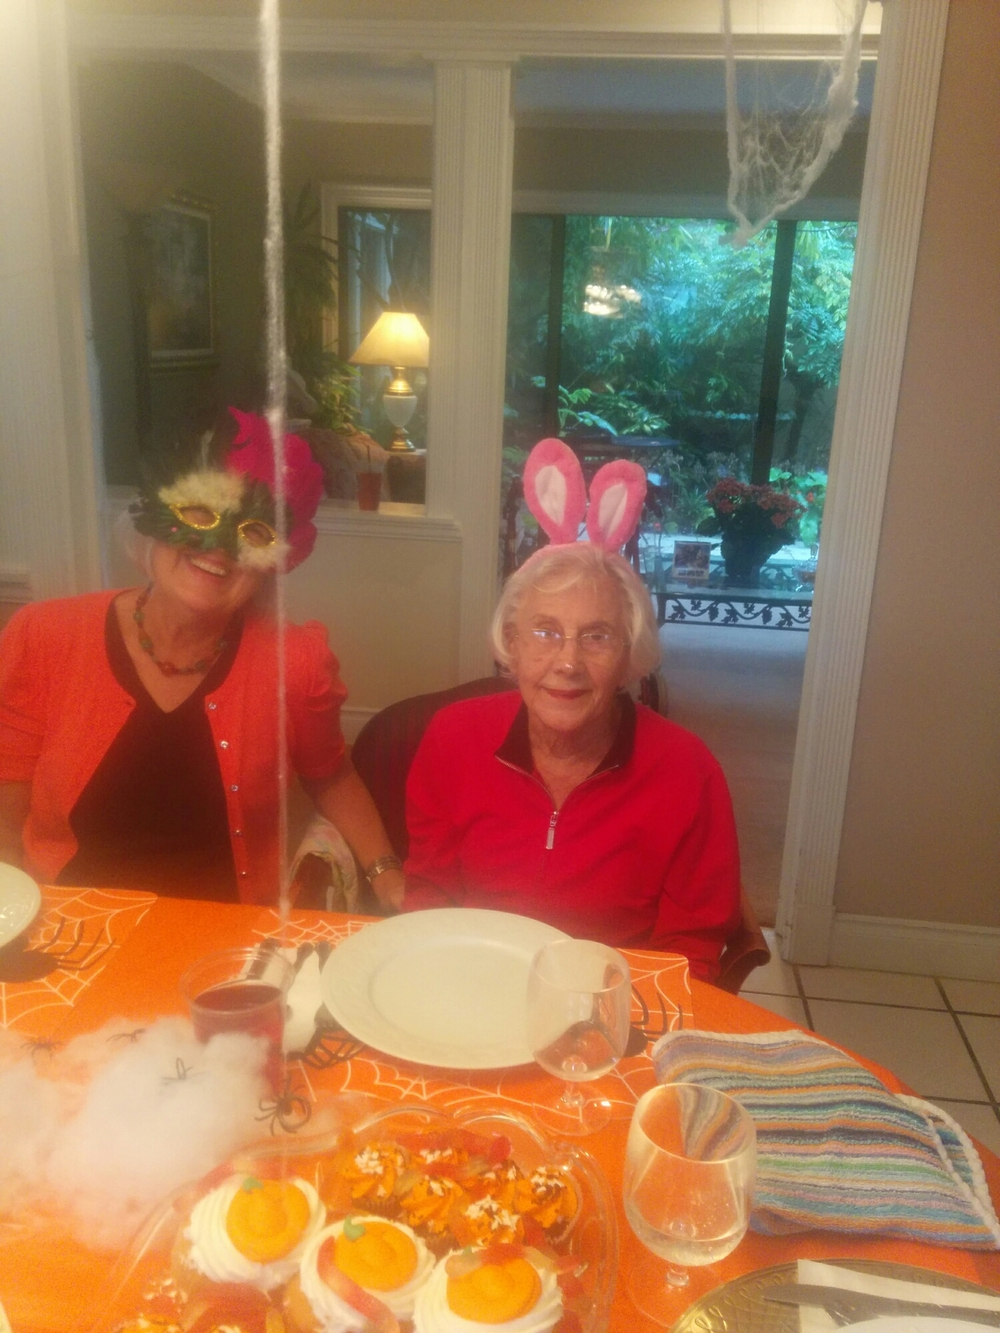 Nicky, dressed as a bunny, with her daughter Donna.